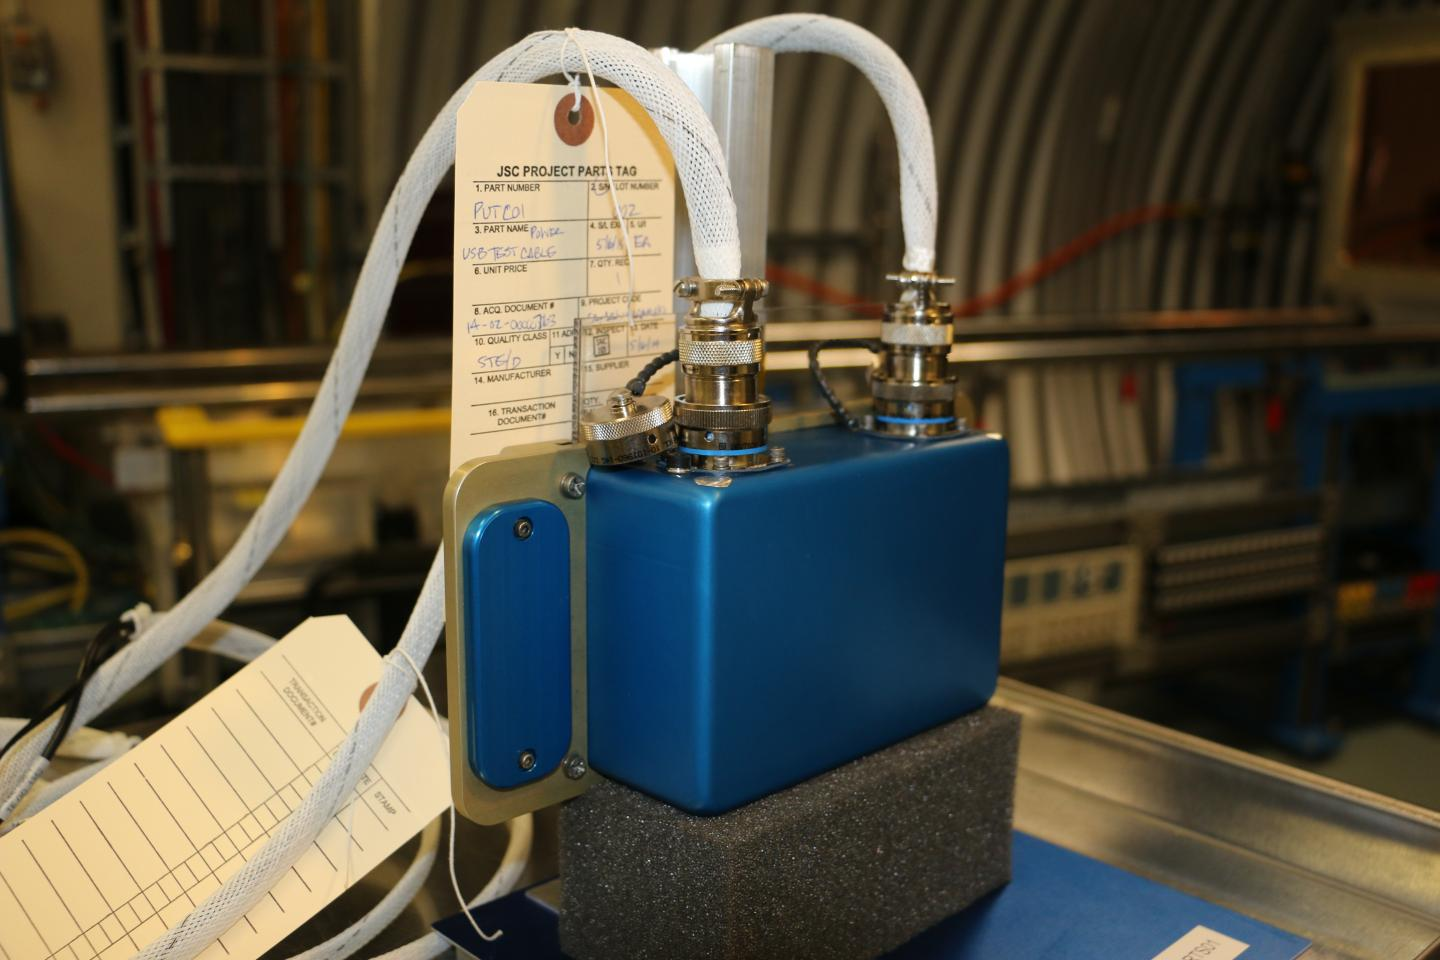 NASA's Battery-operated Independent Radiation Detector